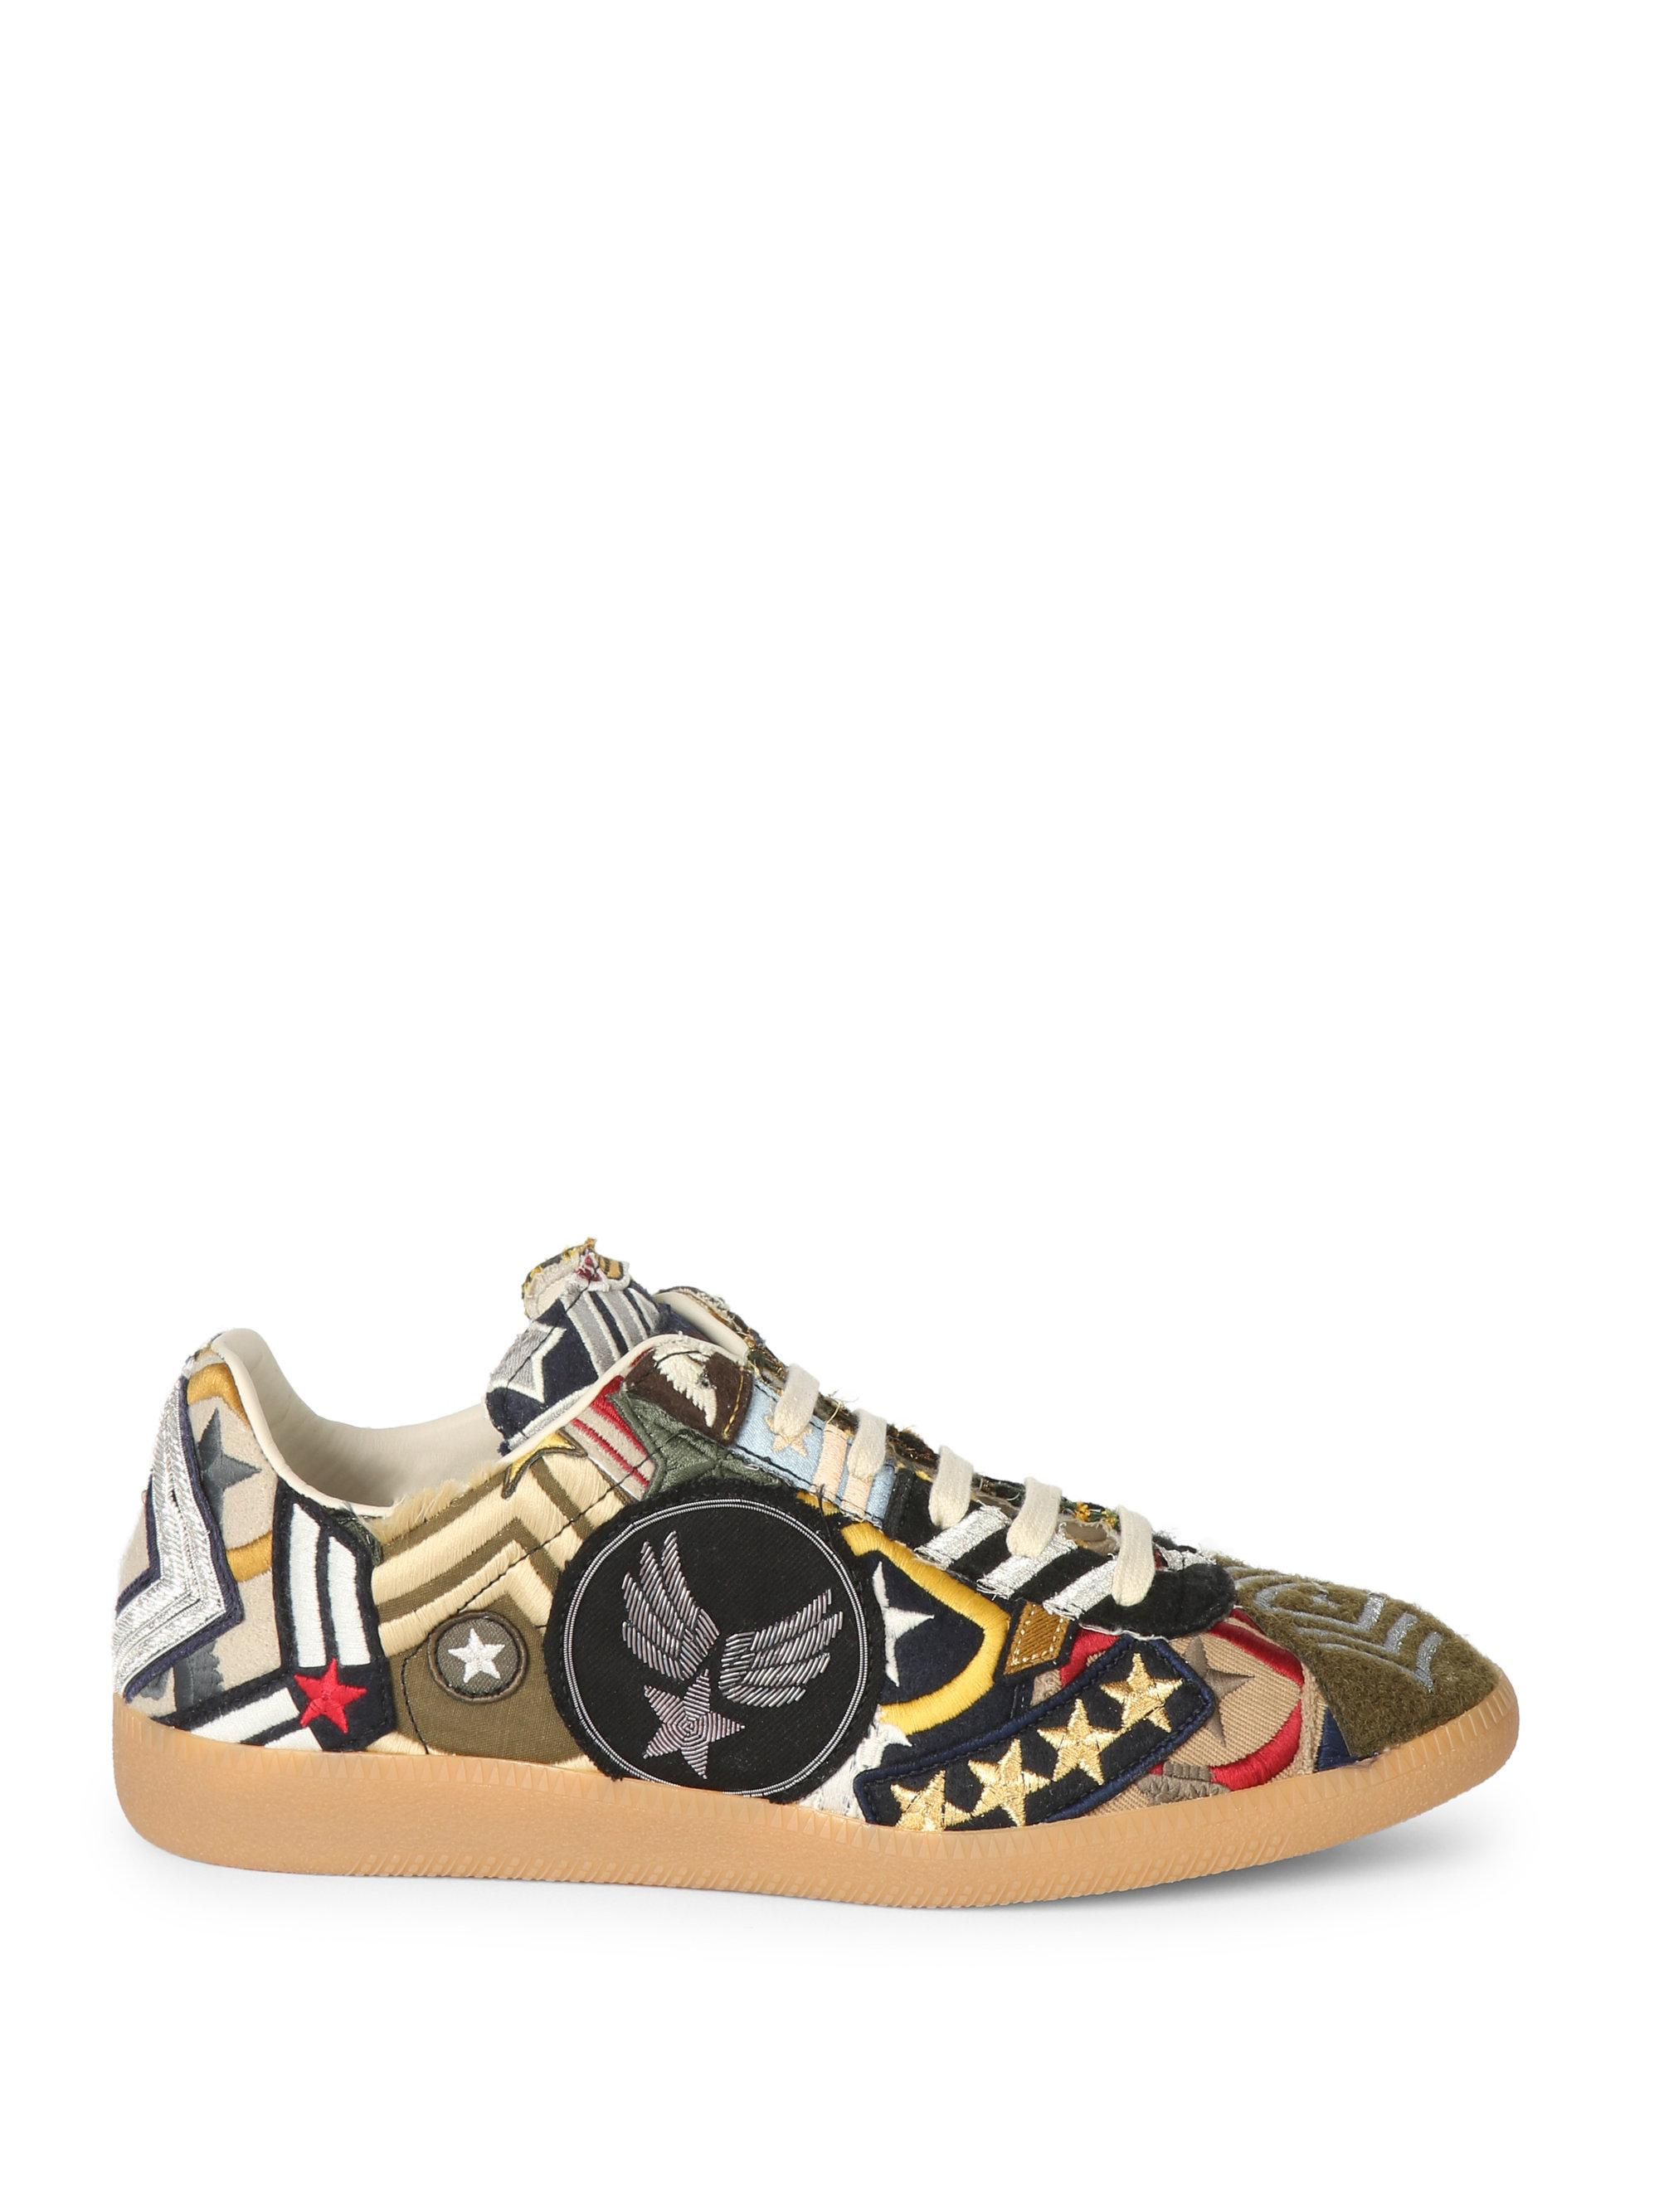 Maison Margiela Embroidered Leather Sneakers dQArNv4oK